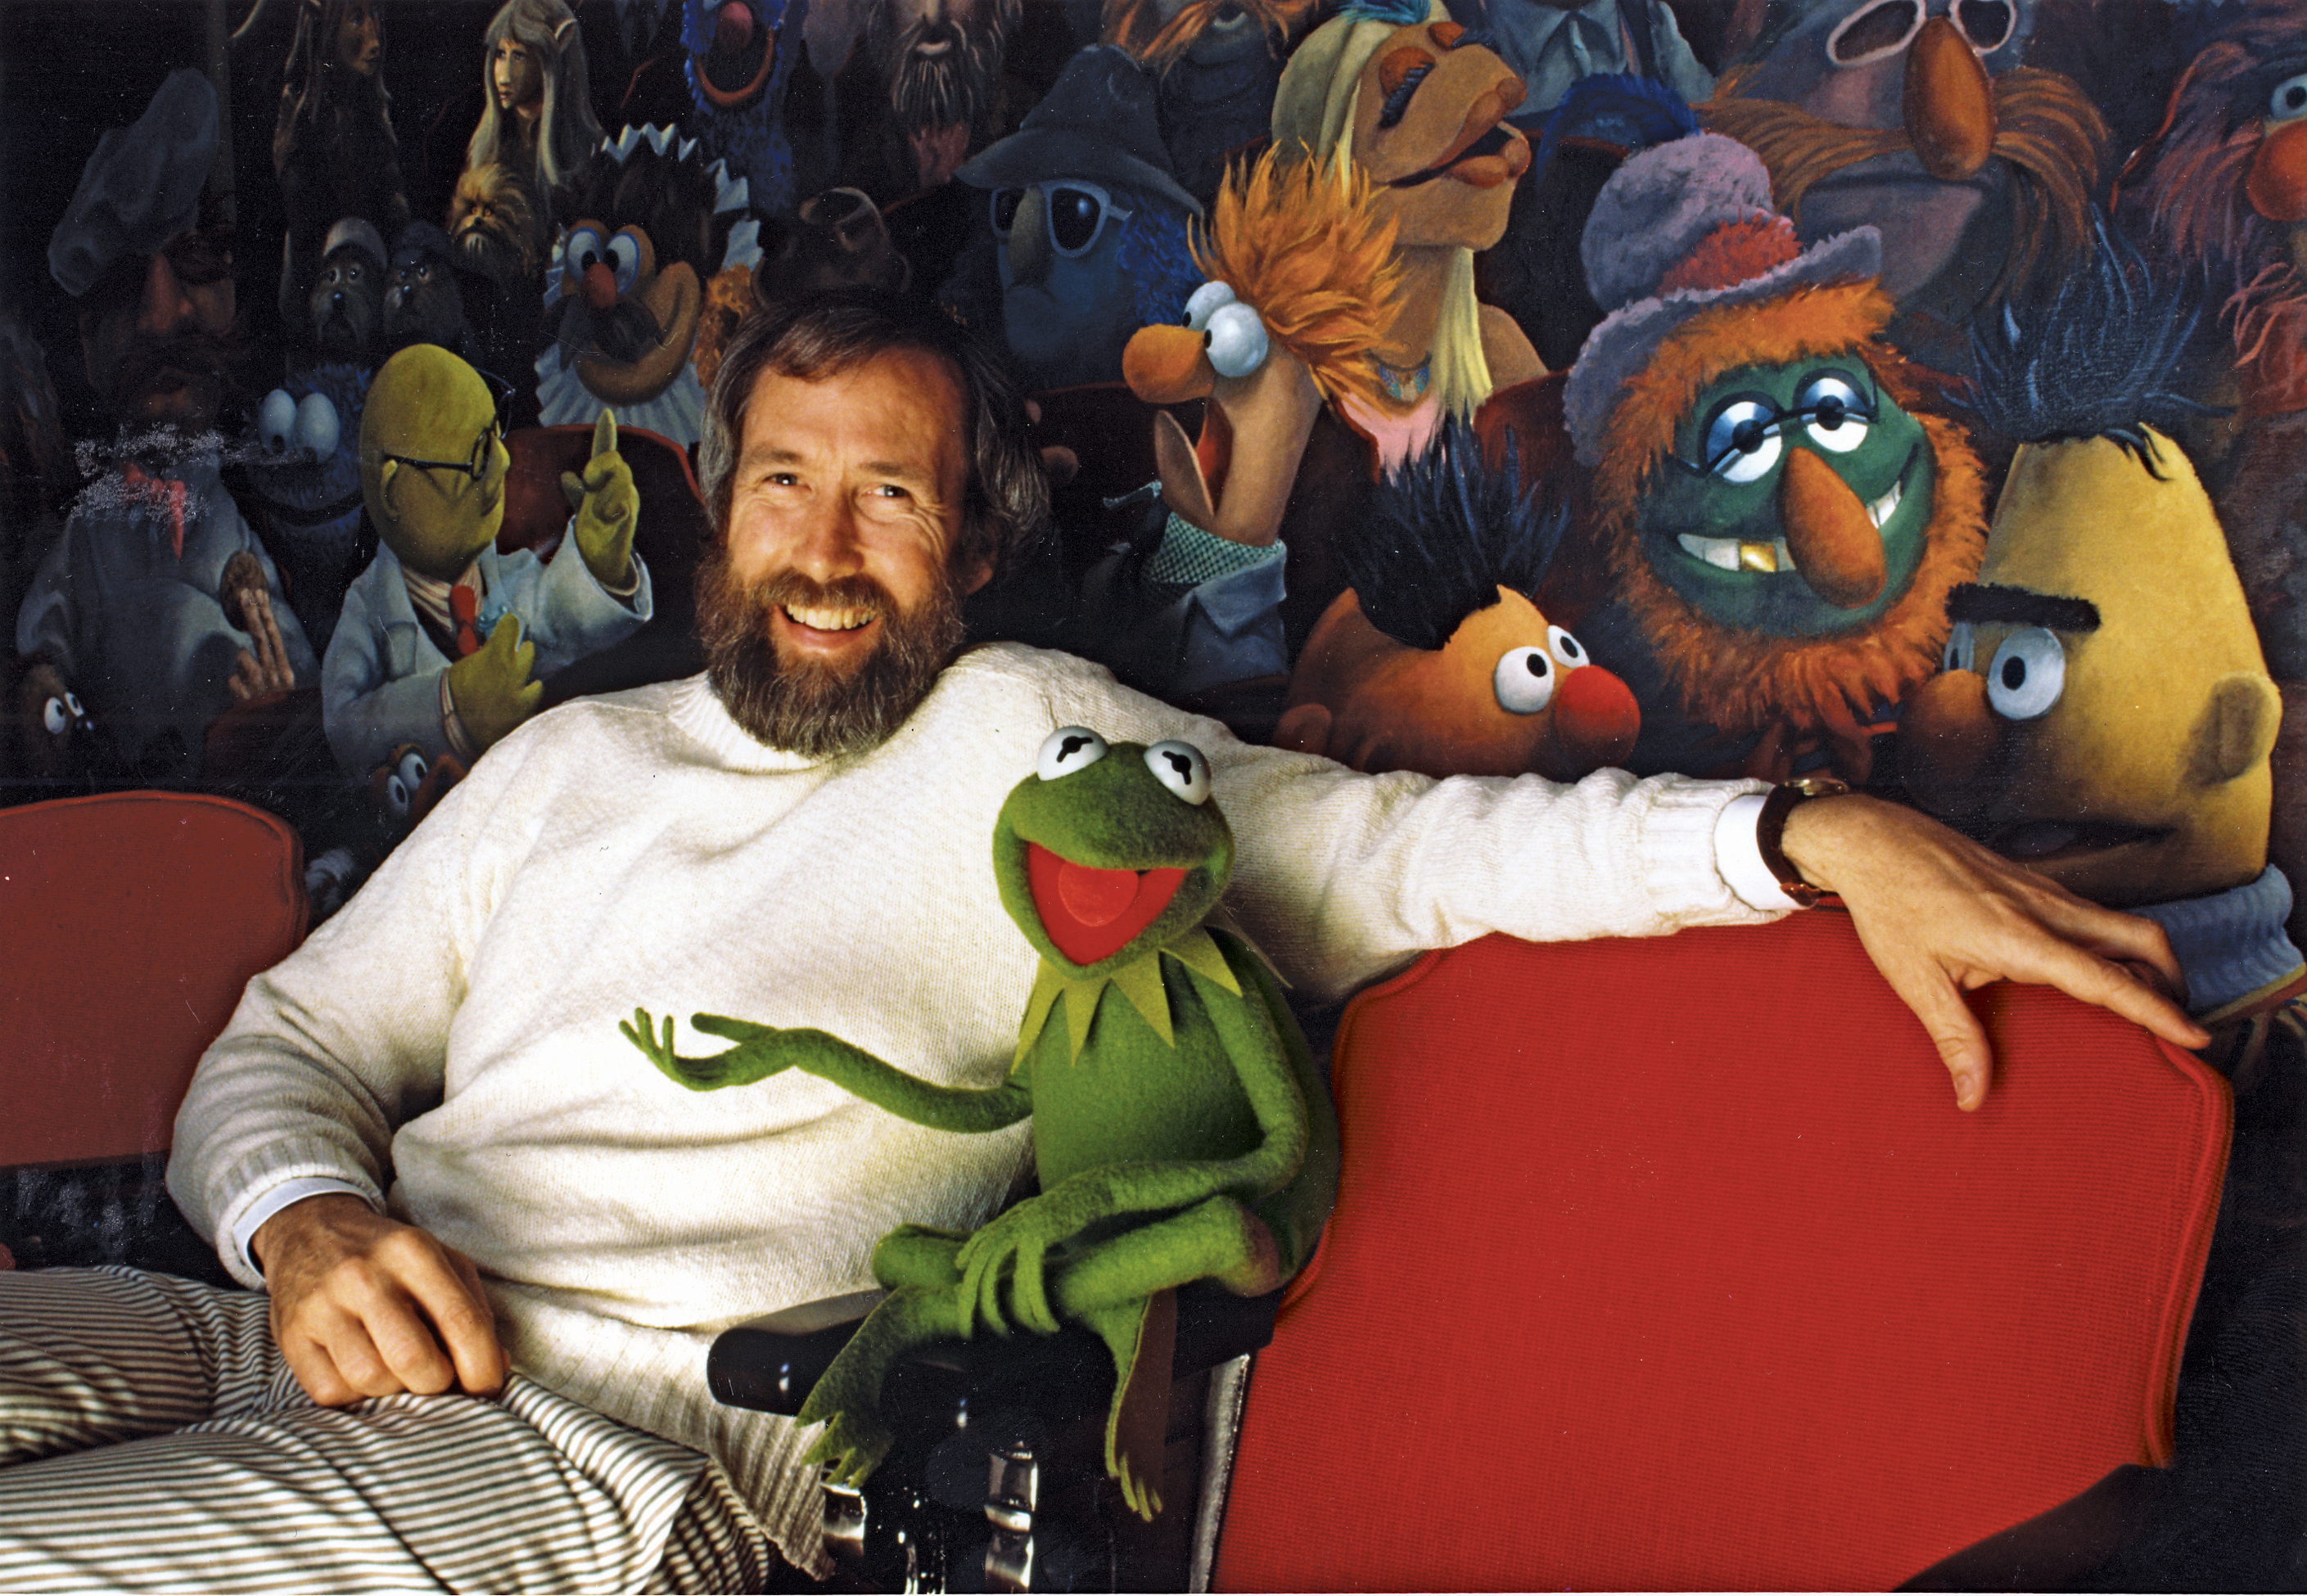 Henson and his characters. Photo by John E. Barrett, courtesy of The Jim Henson Company. Kermit the Frog (c)The Muppets Studio, LLC.